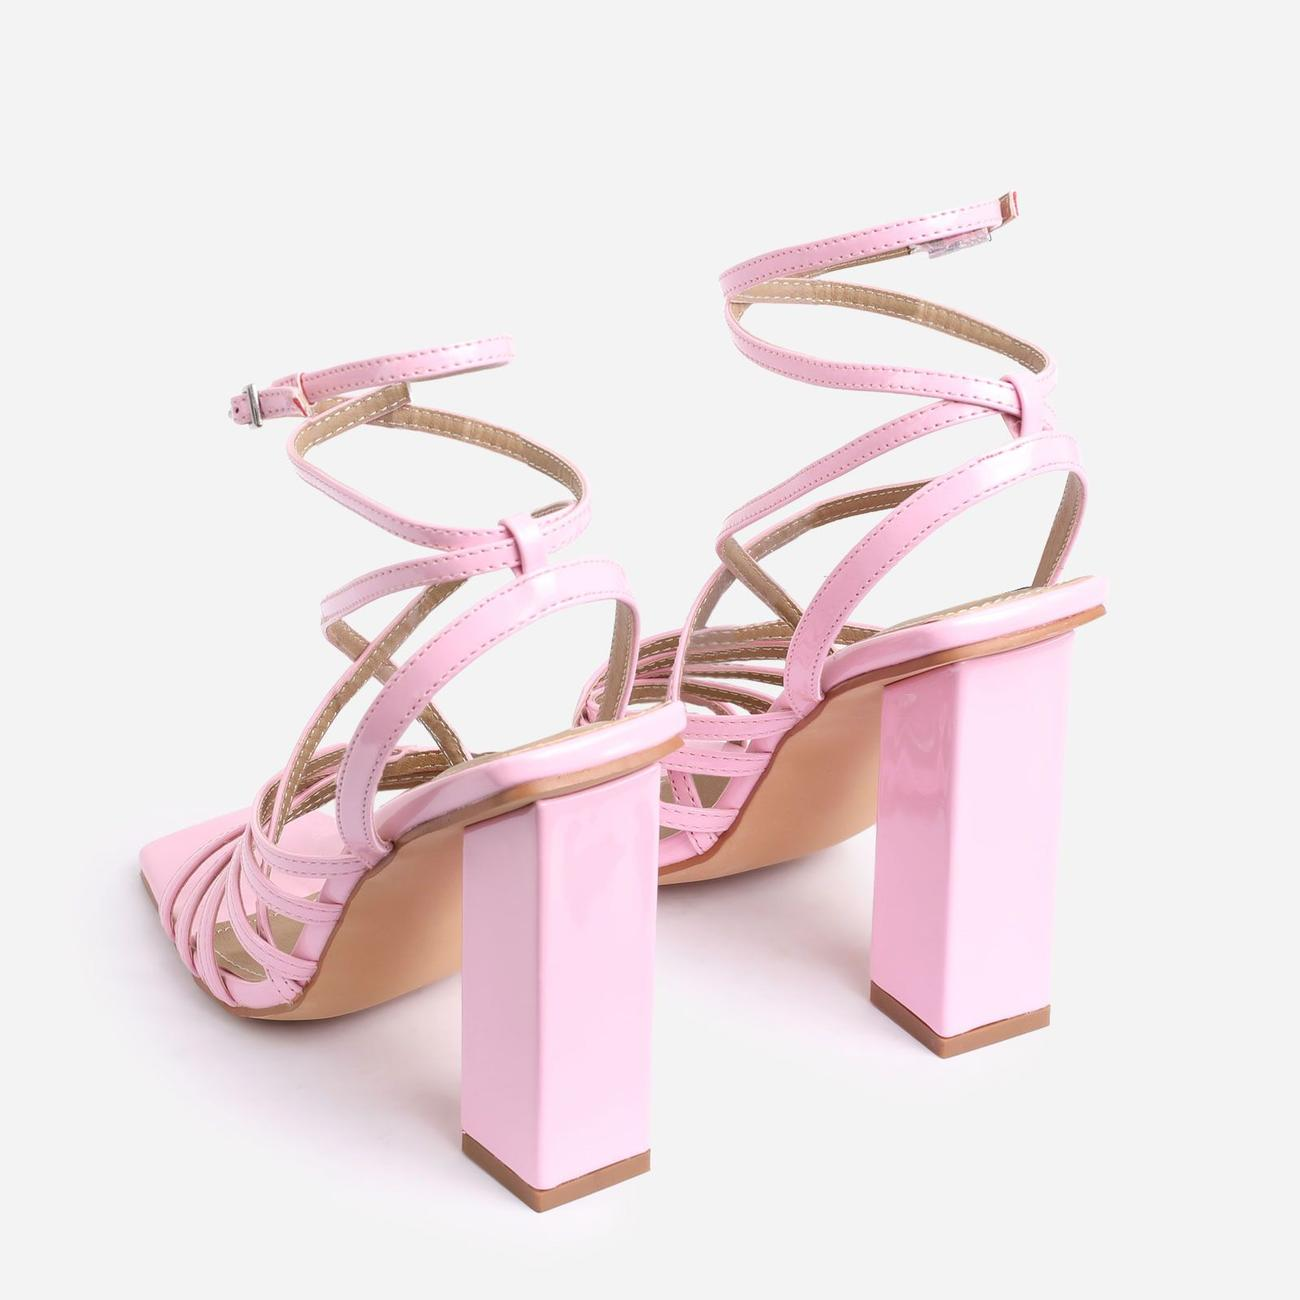 Dancer Square Toe Strappy Block Heel In Pink Patent Image 3